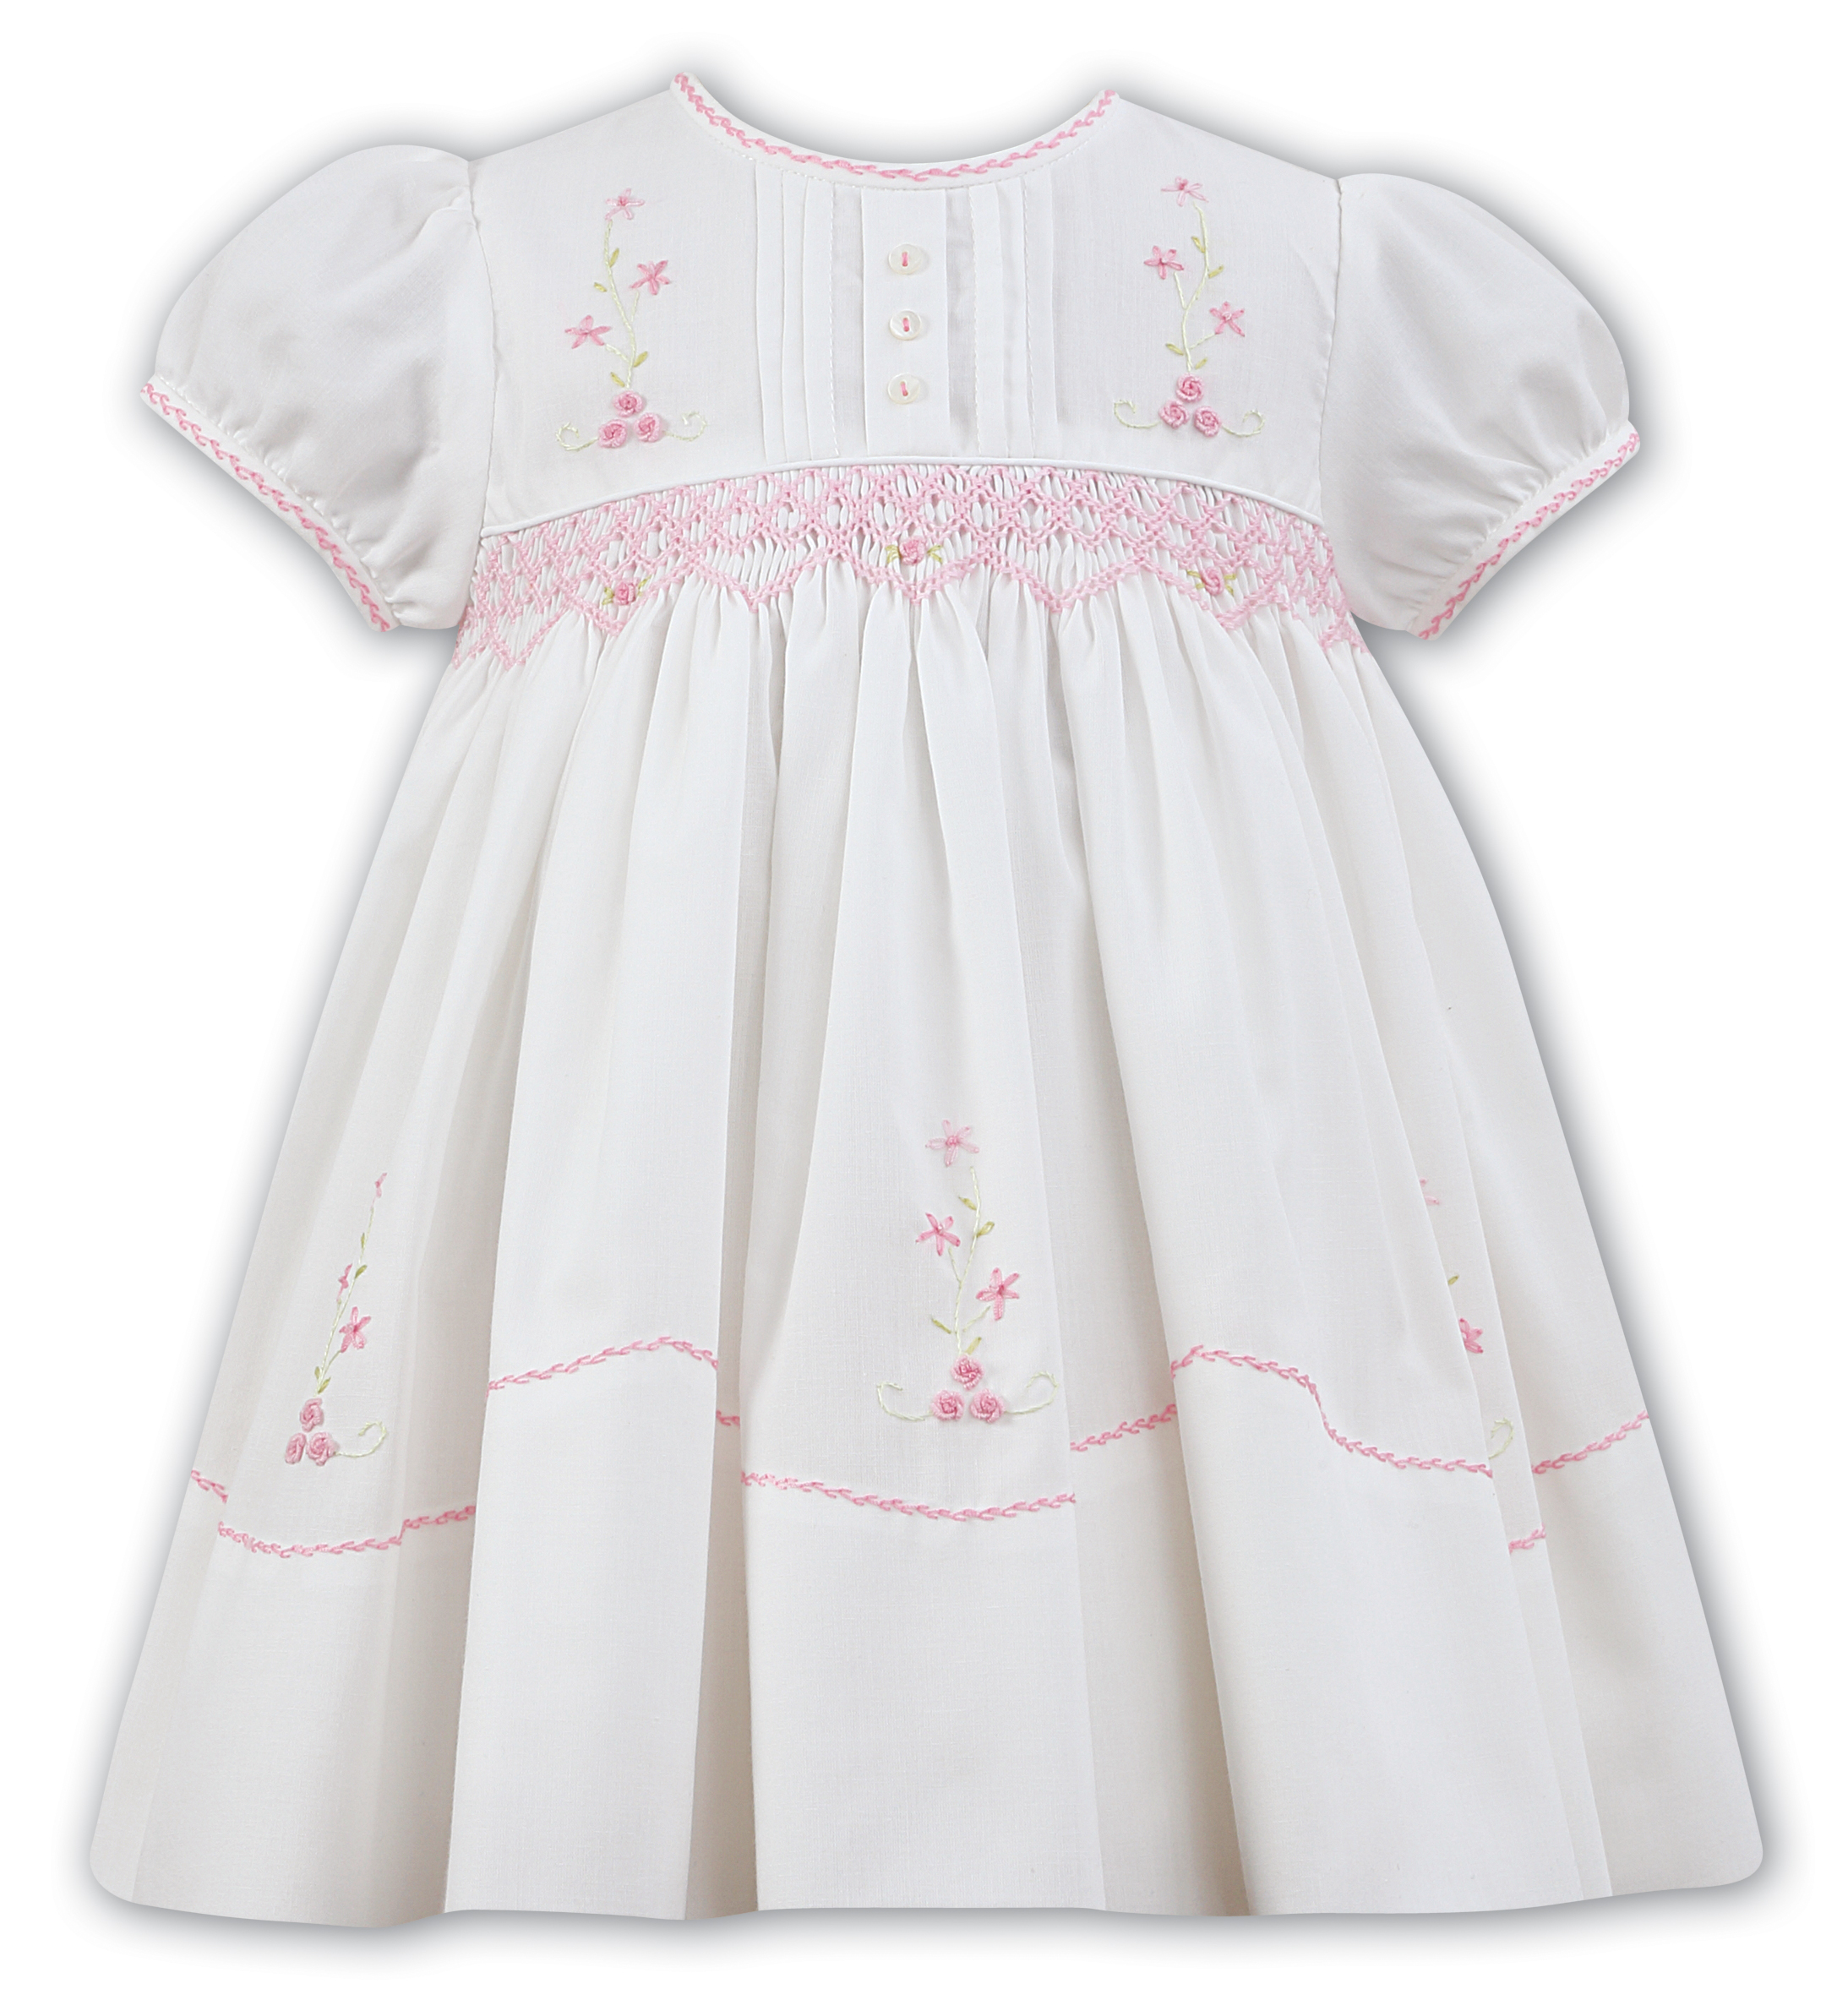 384faaedd SARAH LOUISE IVORY/PINK SMOCK 011475-2 - Babies Blessings